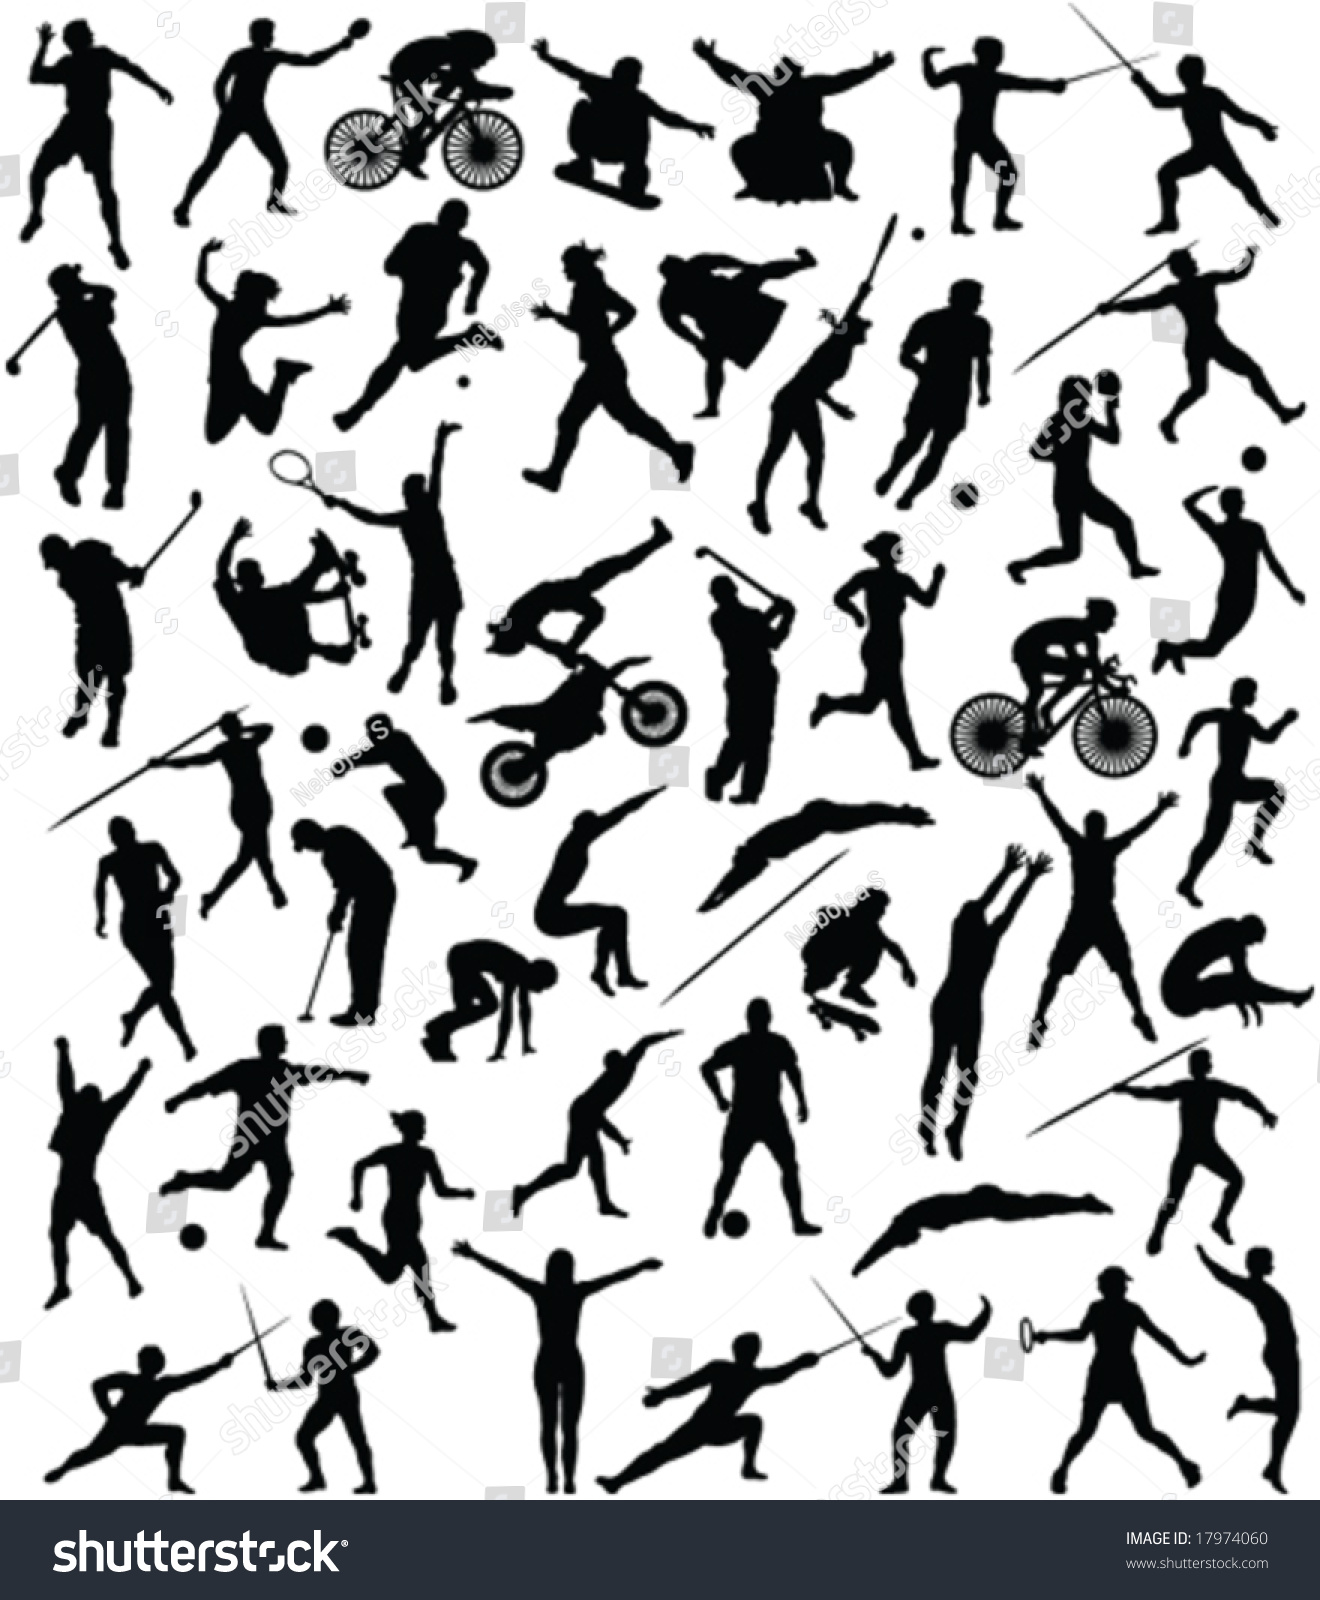 50 High Quality Sport Silhouette Vector Stock Vector